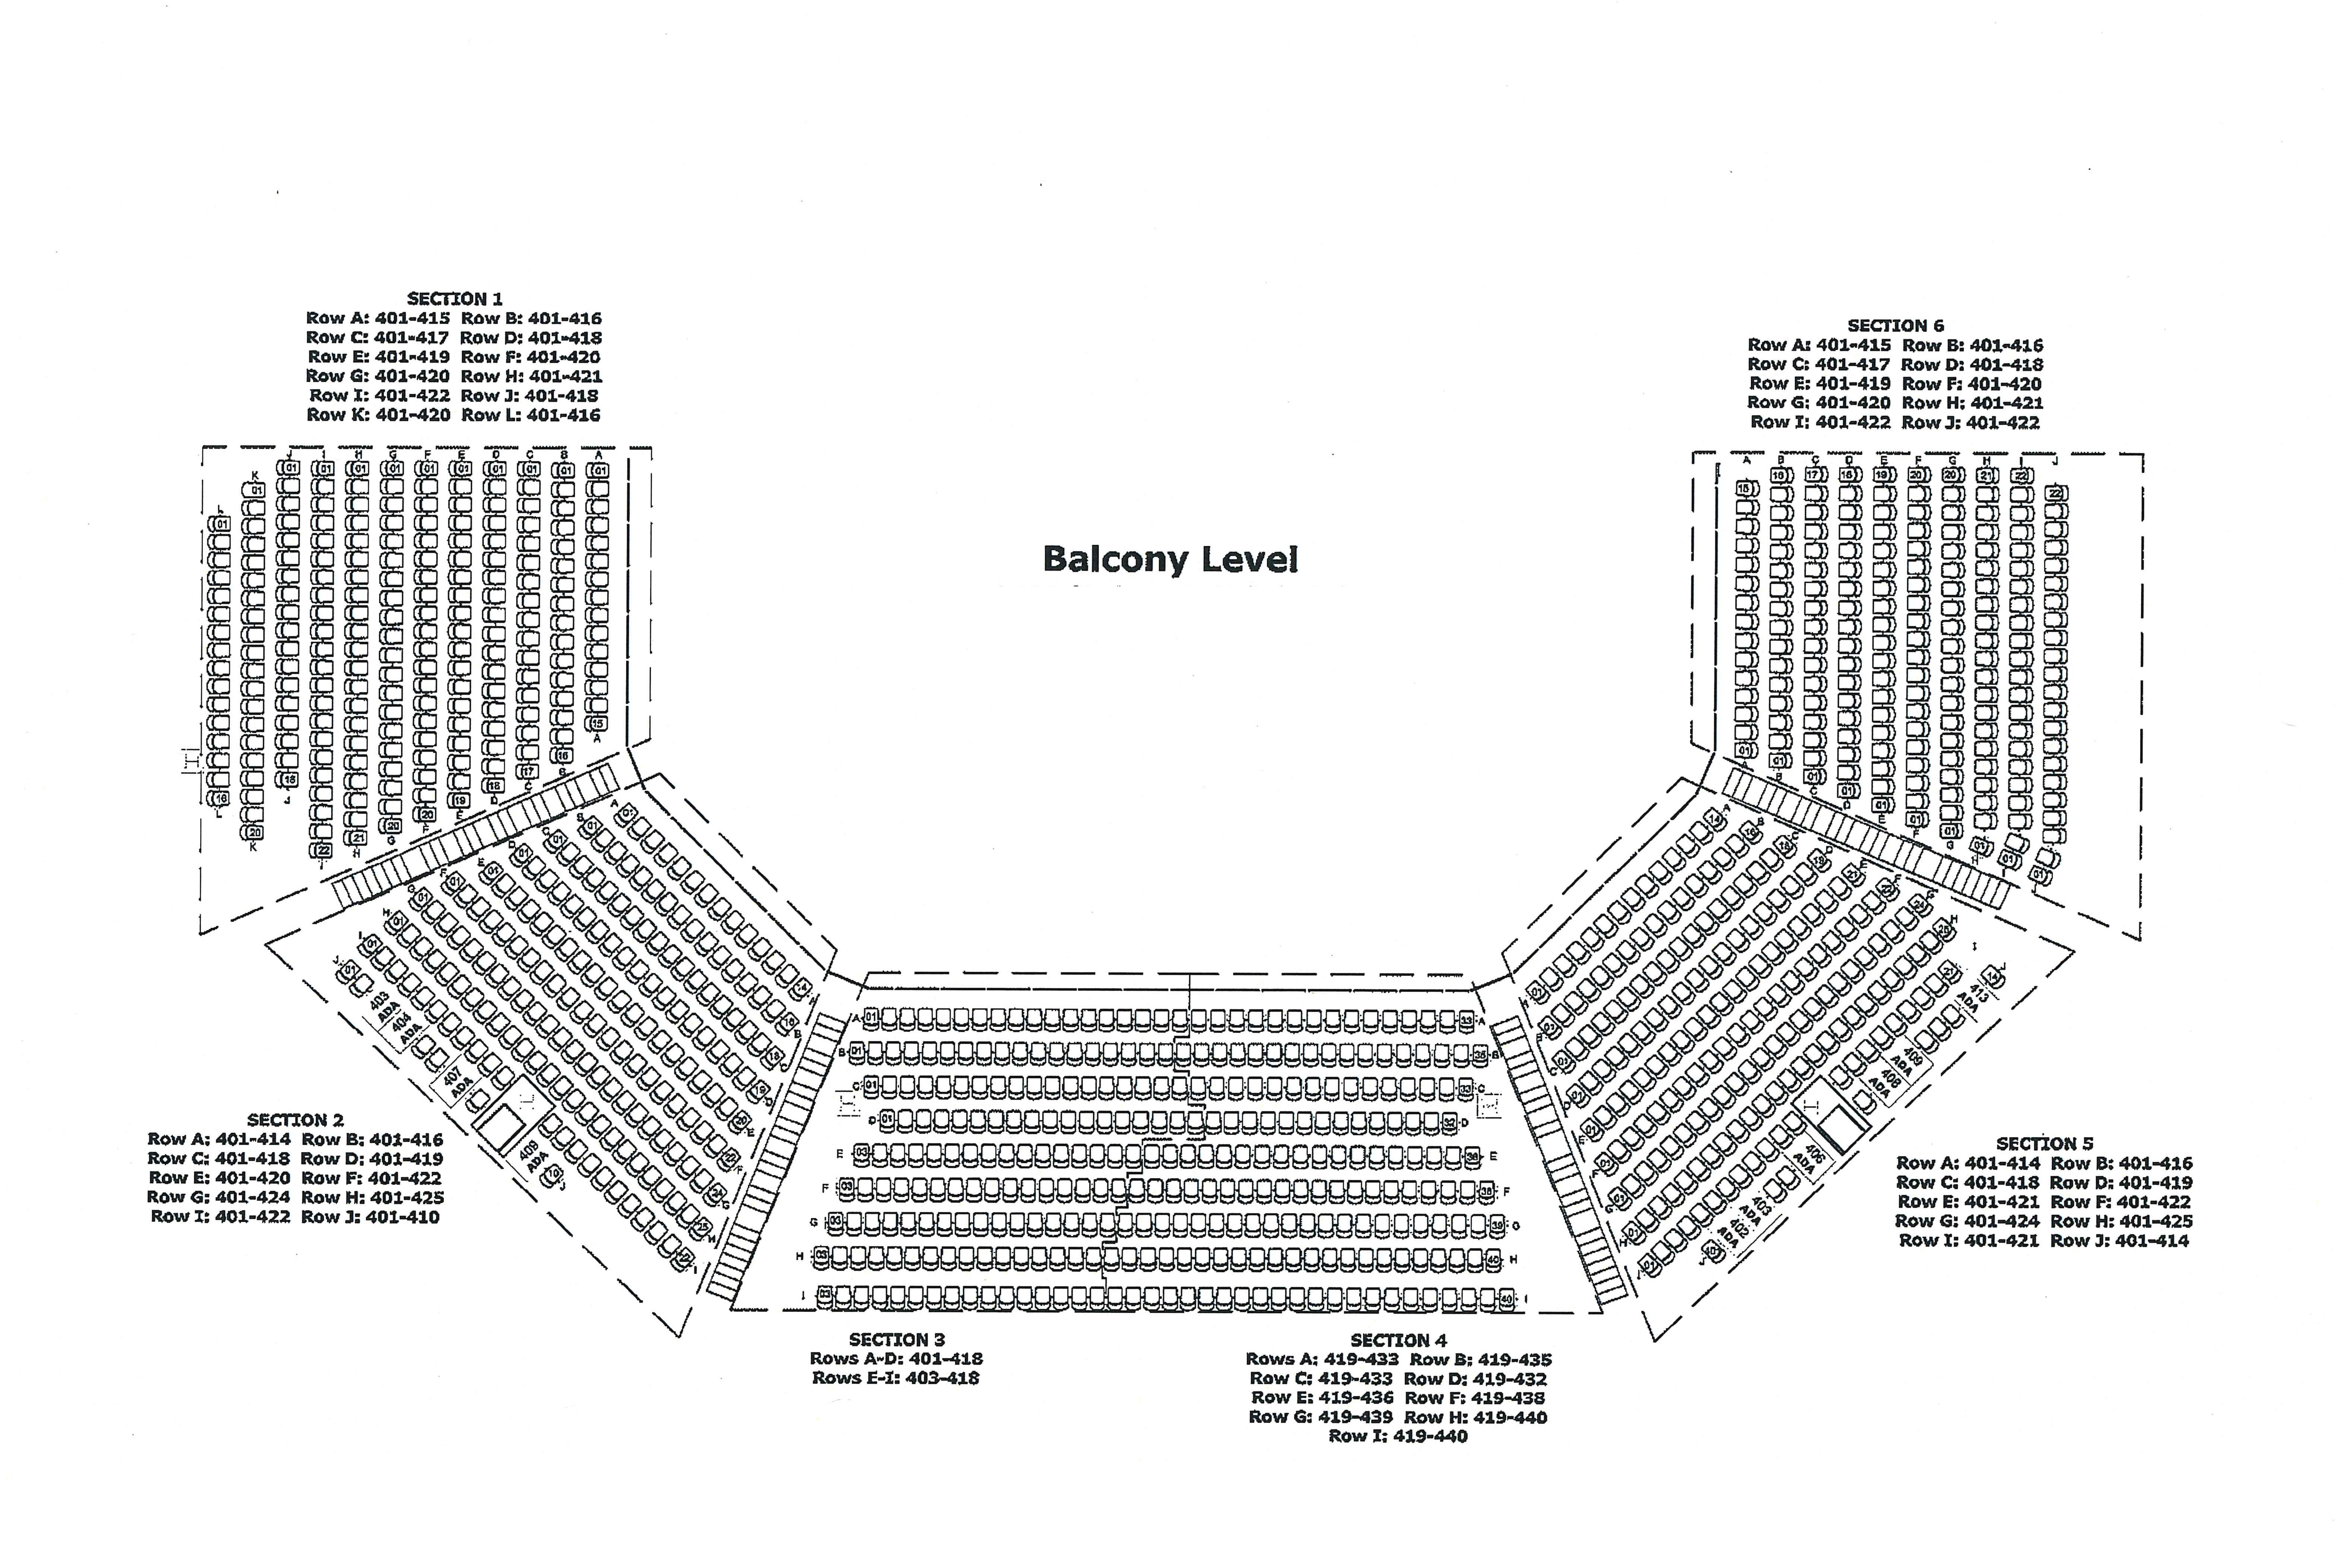 Moody theater diagrams diy enthusiasts wiring diagrams moody theater austin seating chart seat chart gallery rh preservationofwealth us moody diagram friction coefficient formula ccuart Choice Image